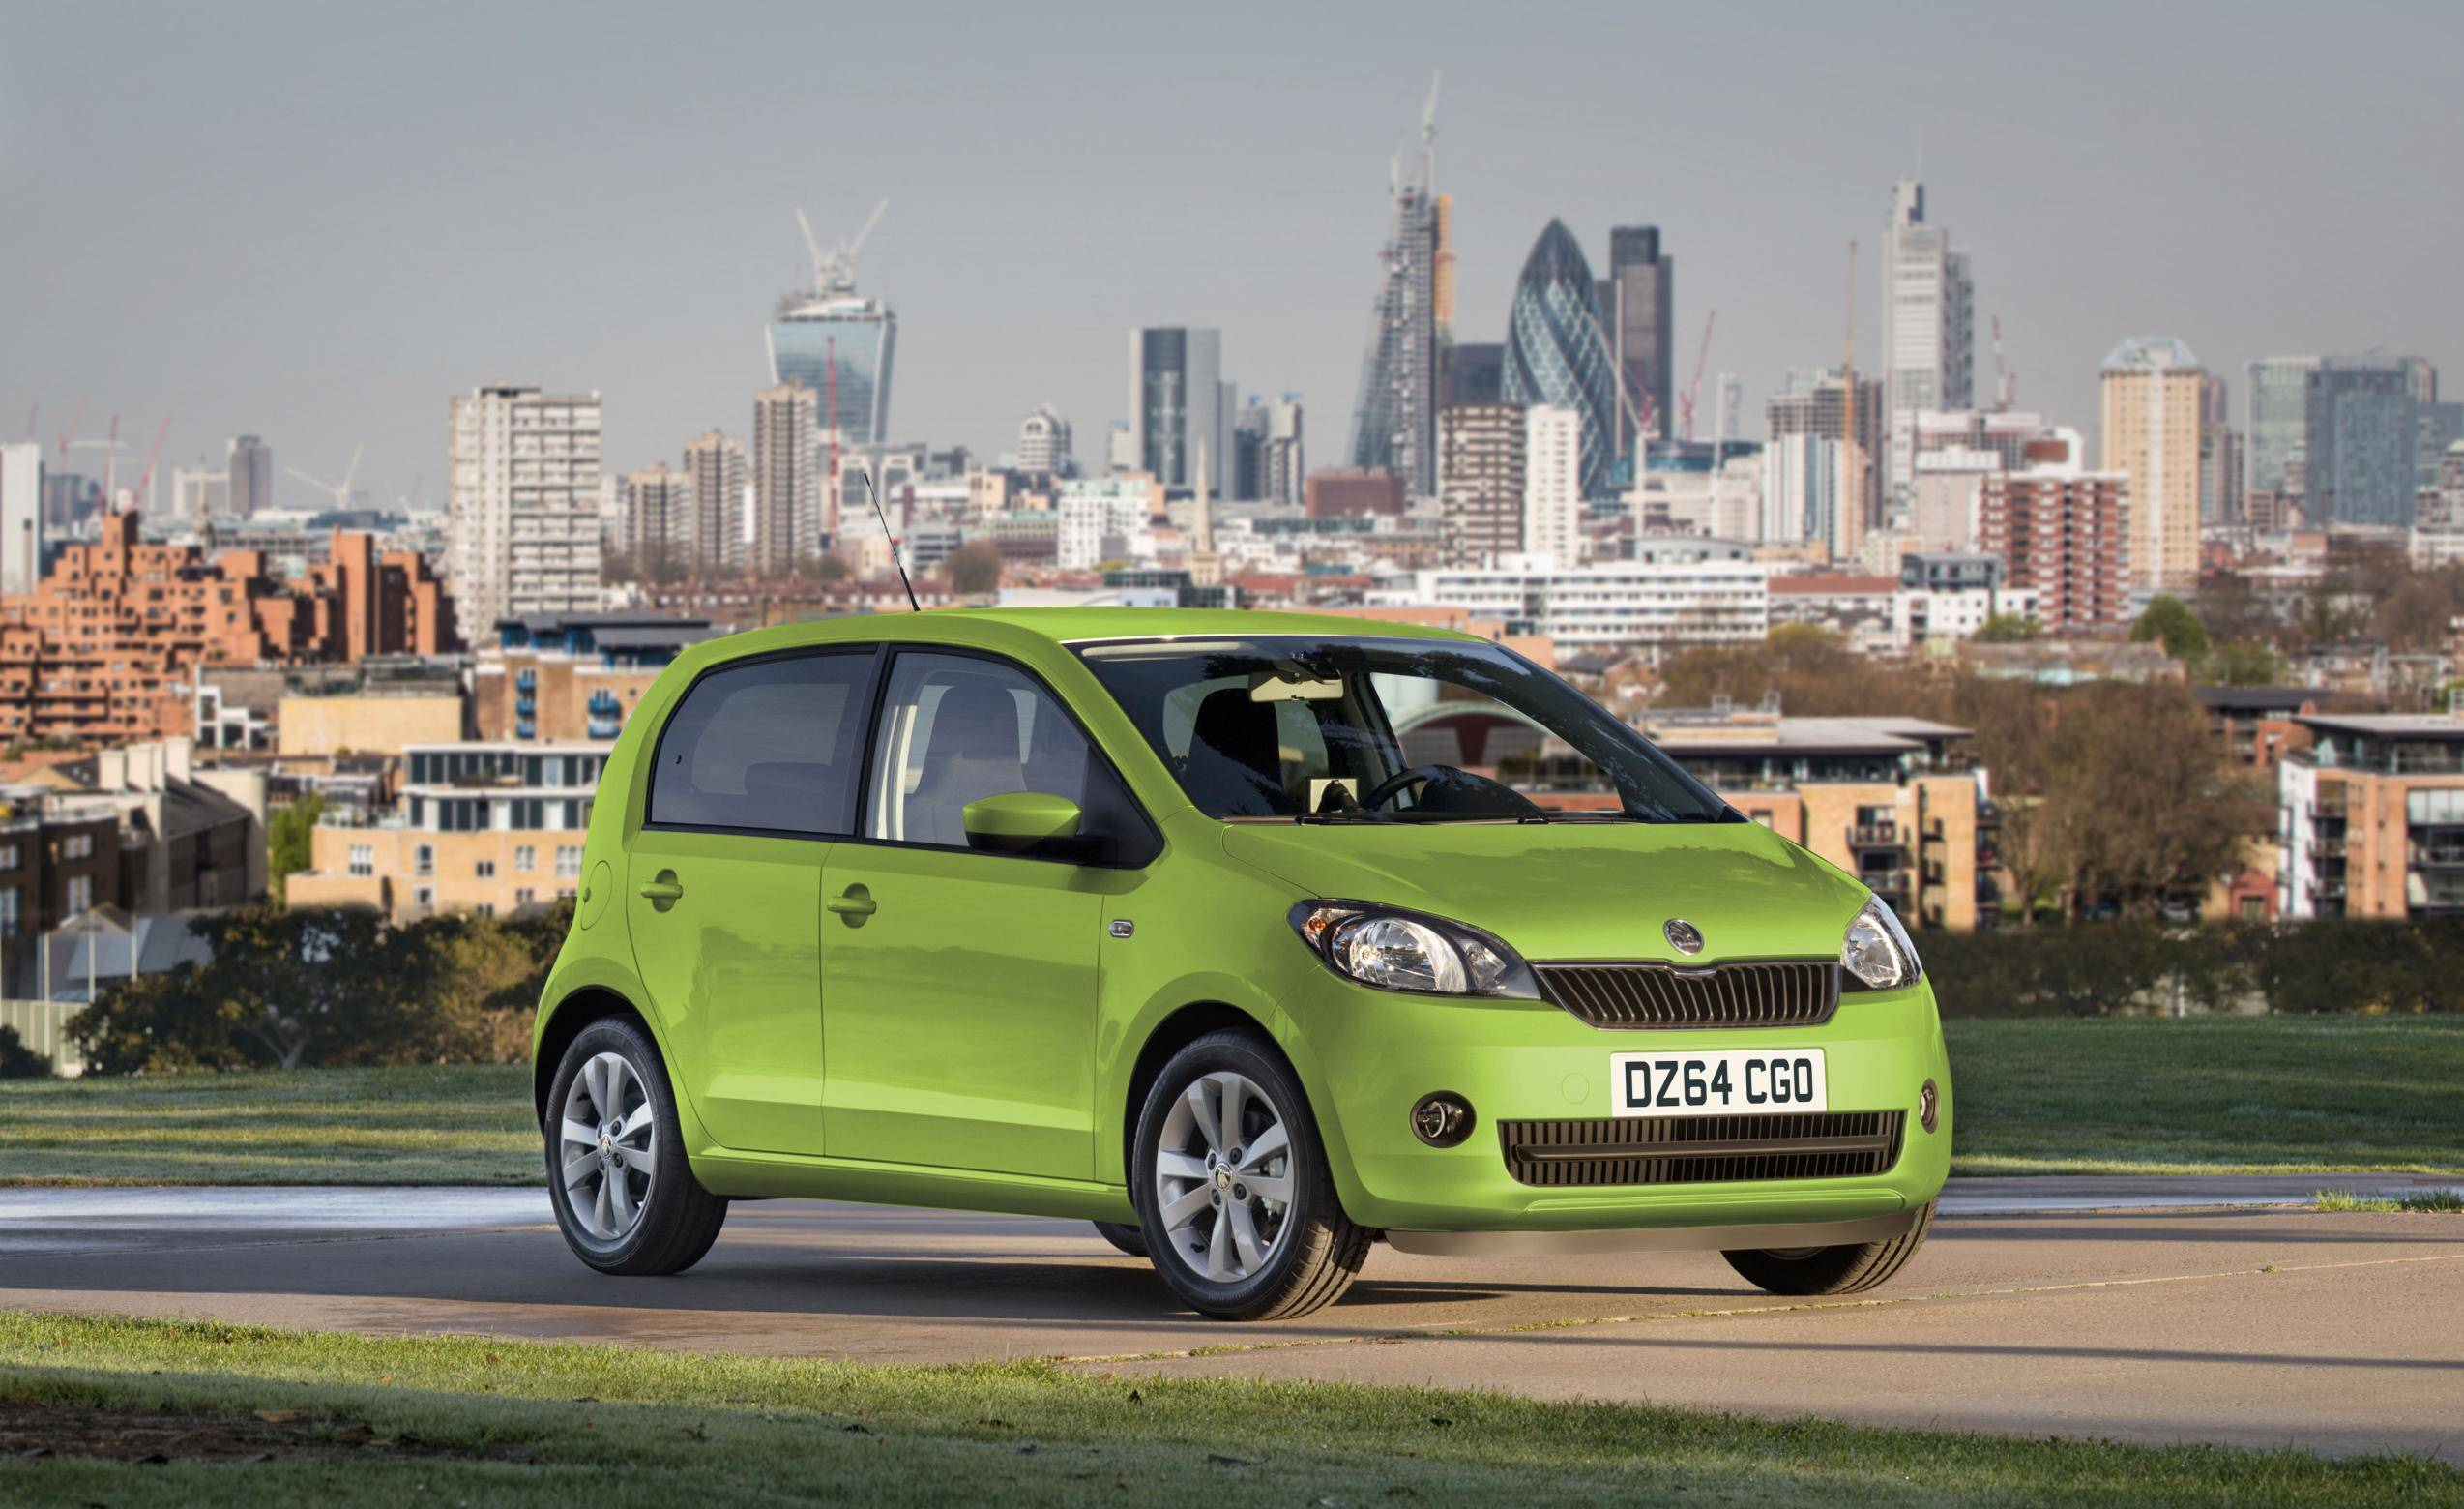 image of a green skoda citigo car exterior